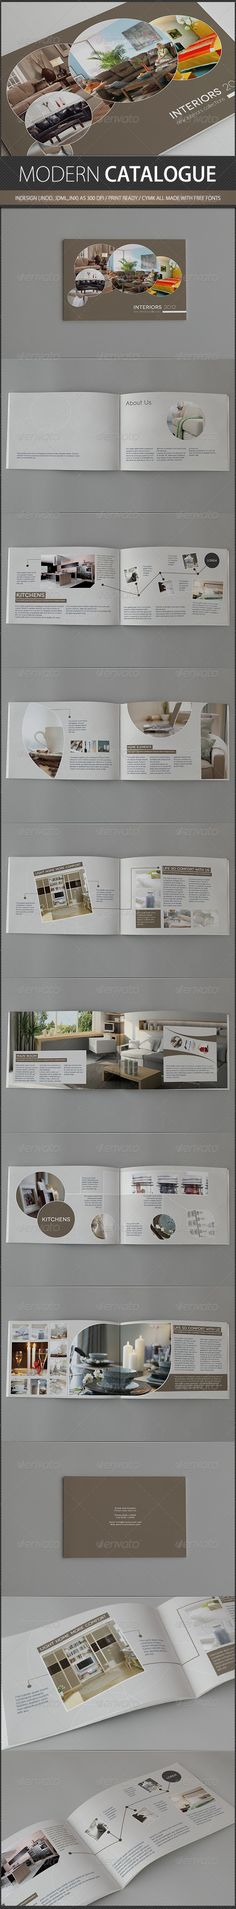 fresh catalogs for home decor brainstroming decor idea.htm darry eav  darryeav  on pinterest  darry eav  darryeav  on pinterest